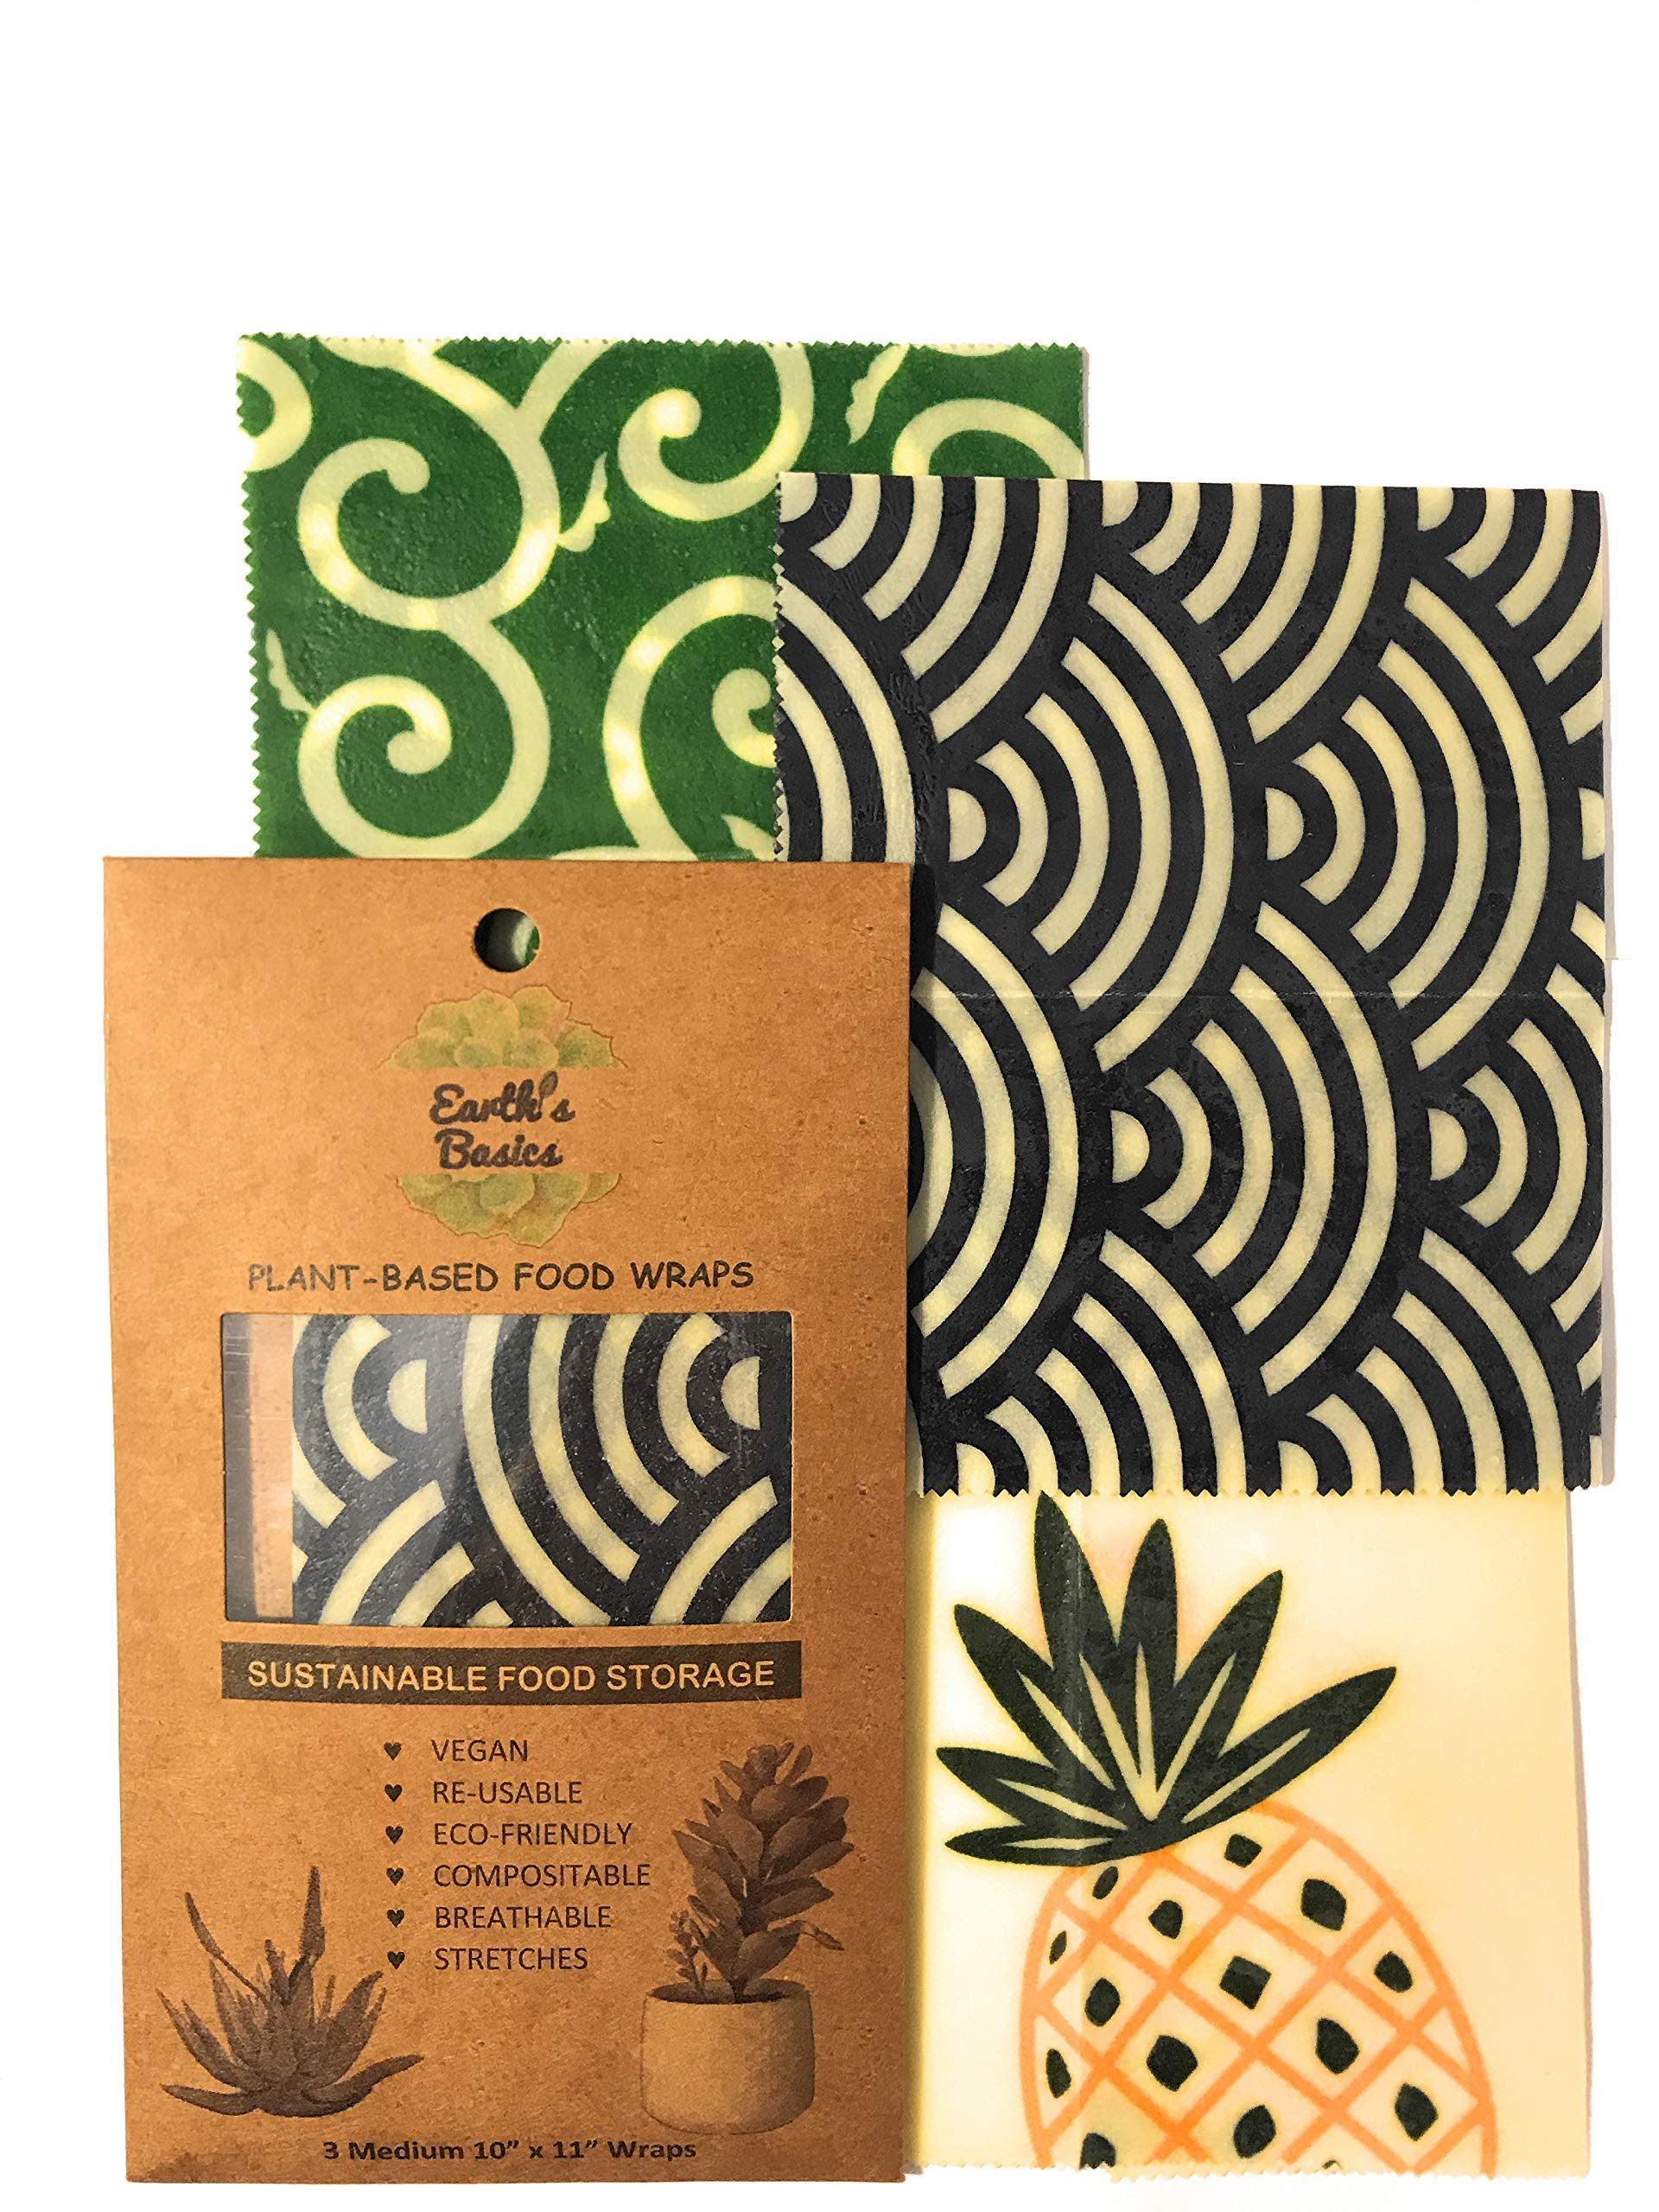 Reusable Organic Food Wraps, Assorted Design 3 Pack by Earth's Basics - Plant Based Food Wraps, Vegan, Non-Toxic, Eco friendly - 3 Medium Wraps by Earth's Basics